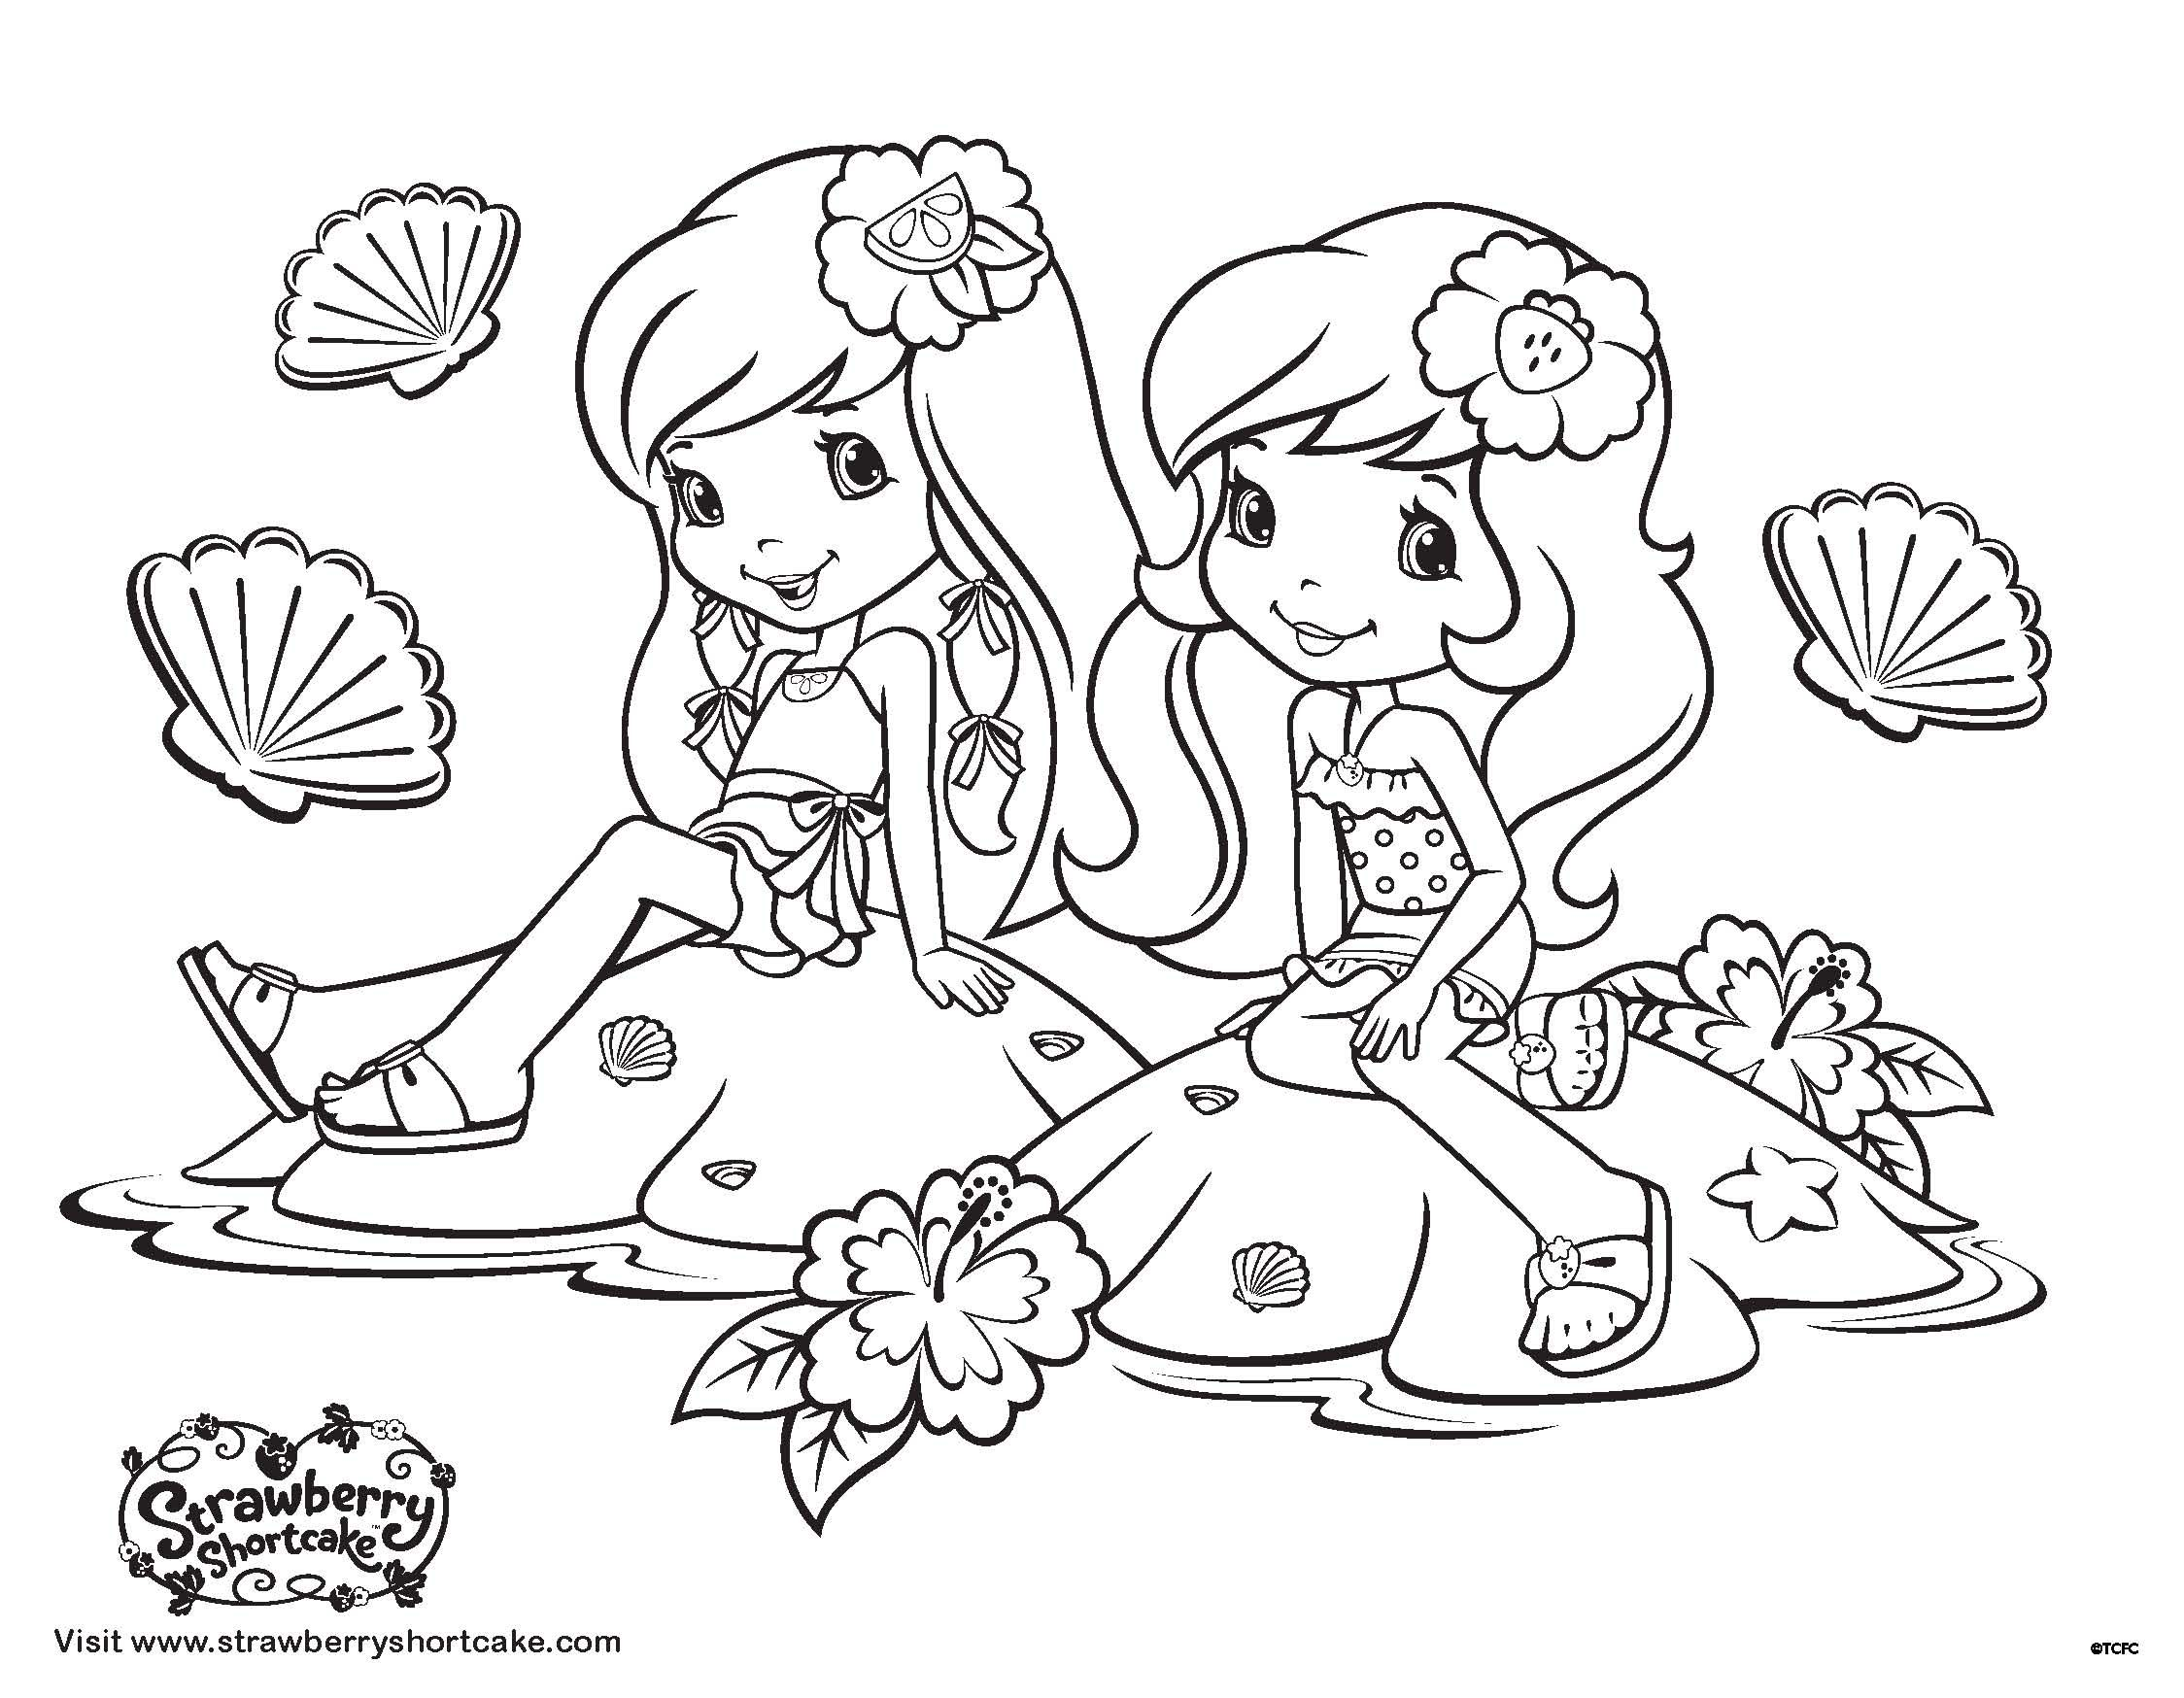 Coloring games of people - Strawberry Shortcake Added 10 New Photos To The Album Coloring Book Pages With Nida Satira And 123 Others